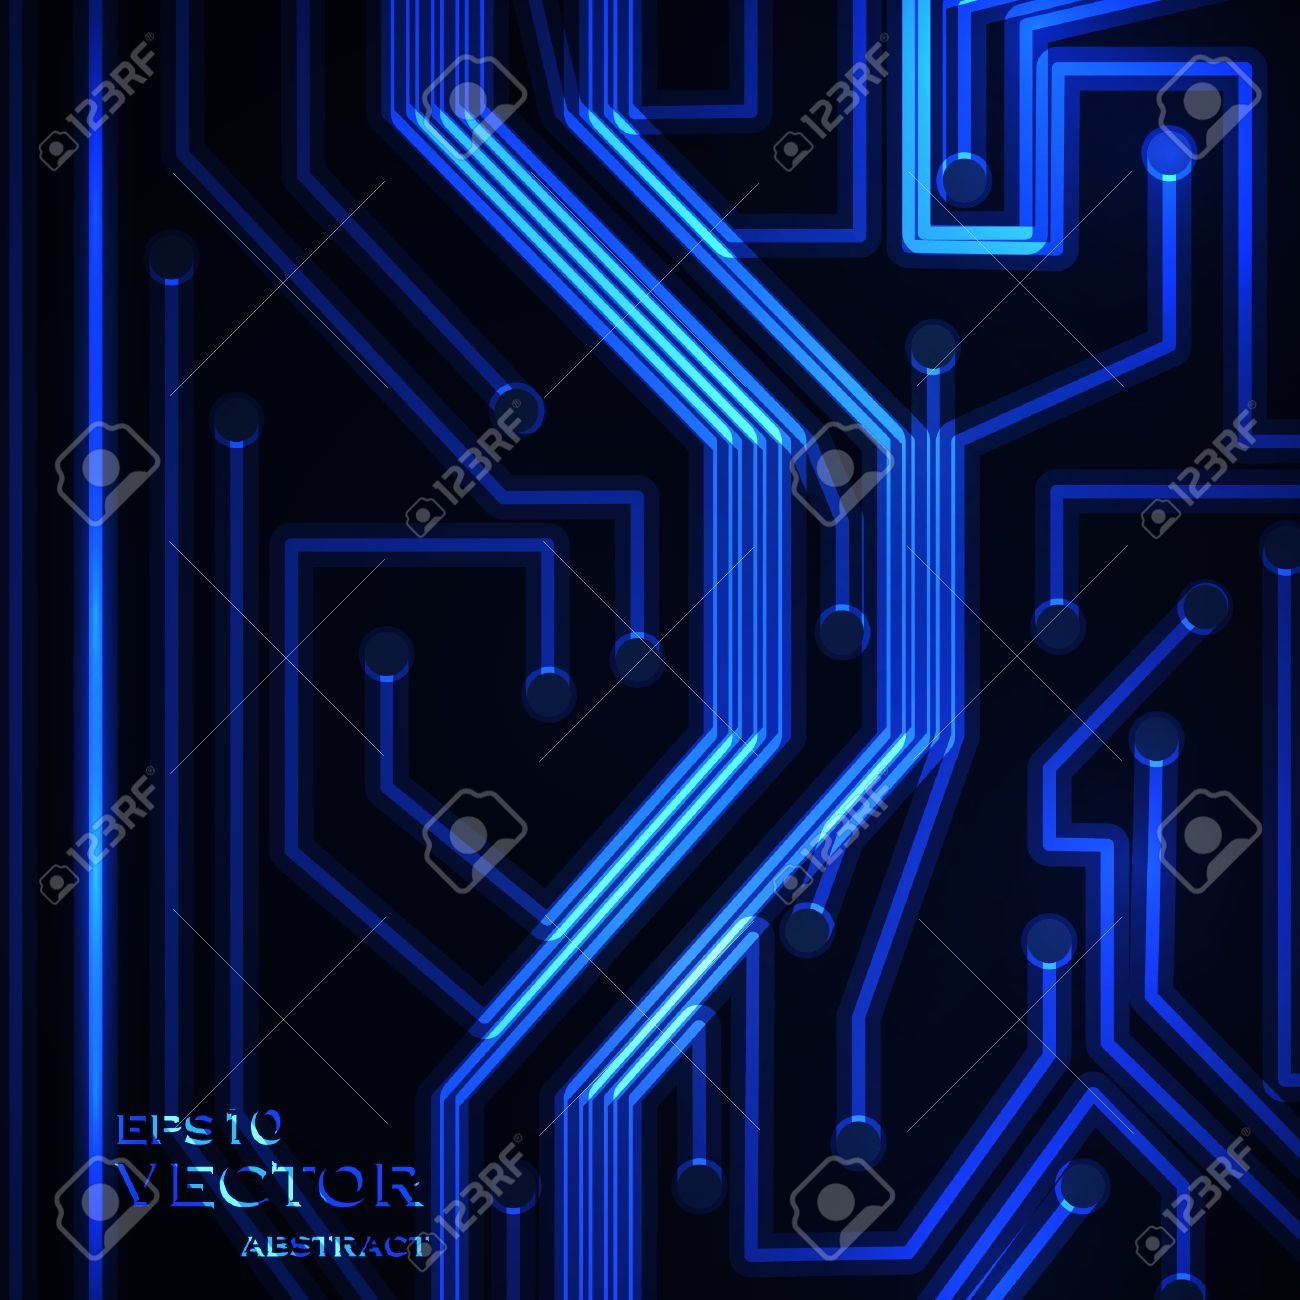 Neon circuit board, abstract  background, technology illustration Stock Vector - 16109715